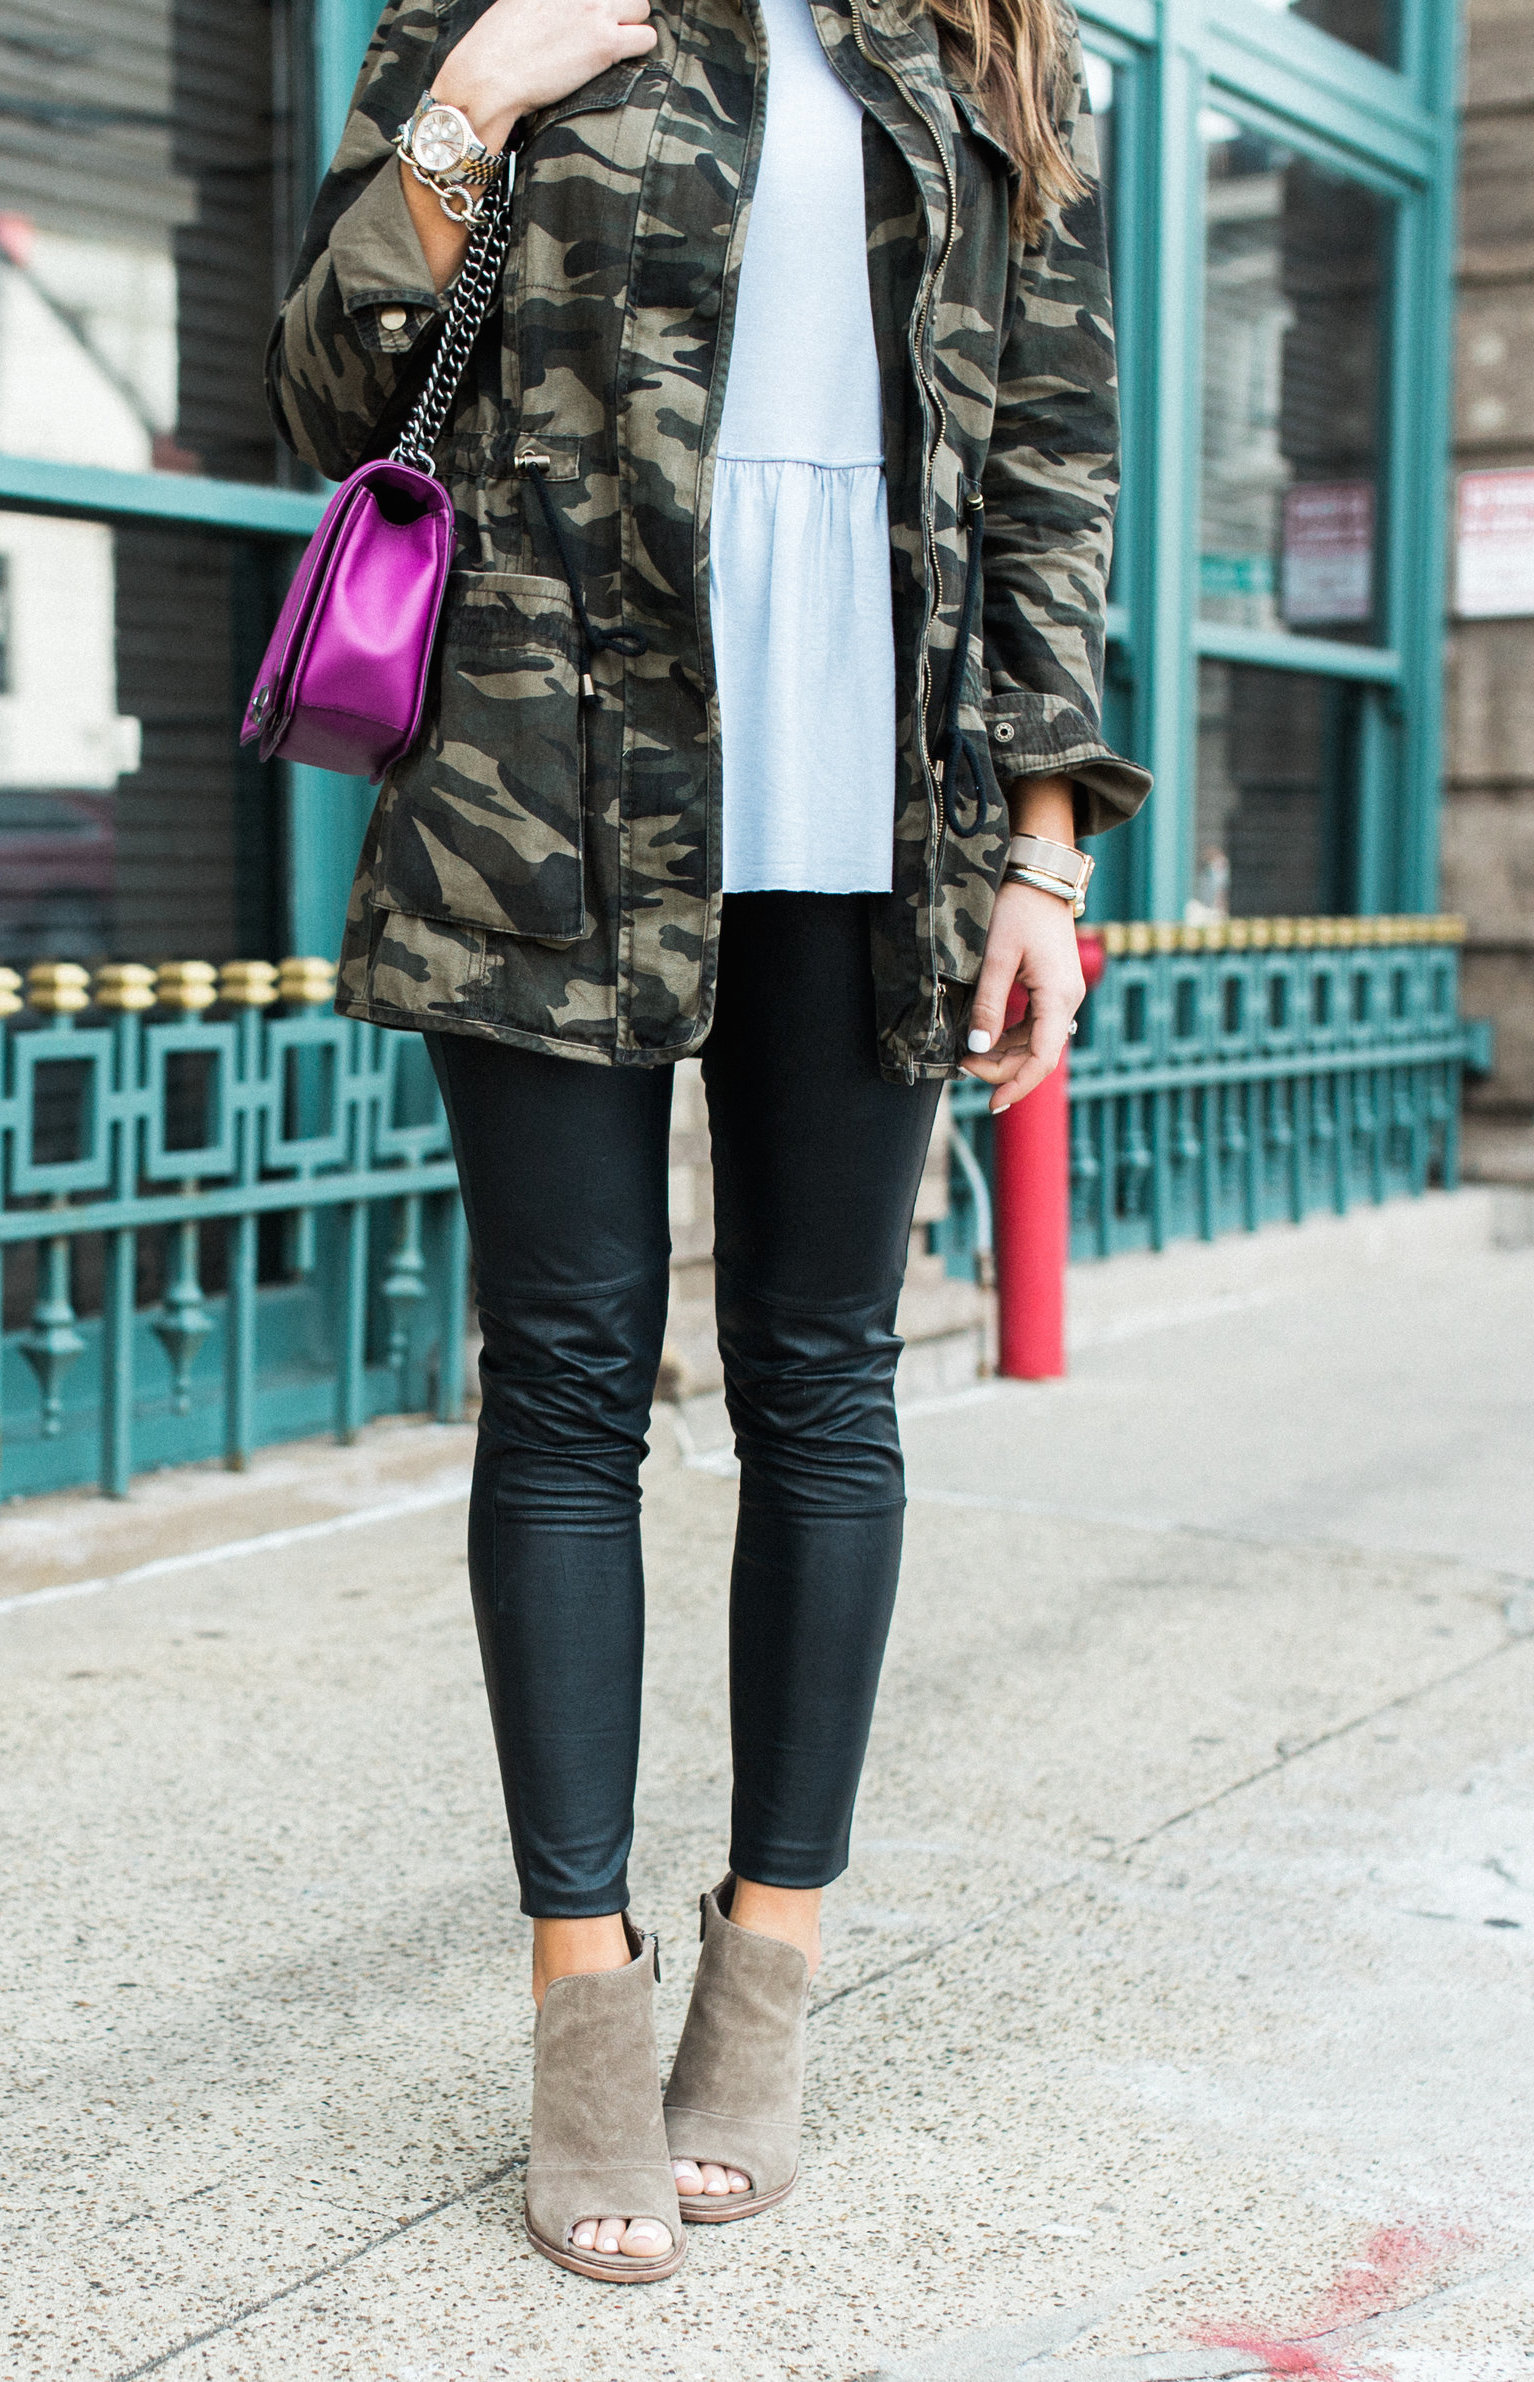 Spring Outfit Inspiration via Glitter & Gingham // Ft. Camo Jacket, Leather Leggings, Vince Camuto Booties, Rebecca Minkoff Bag